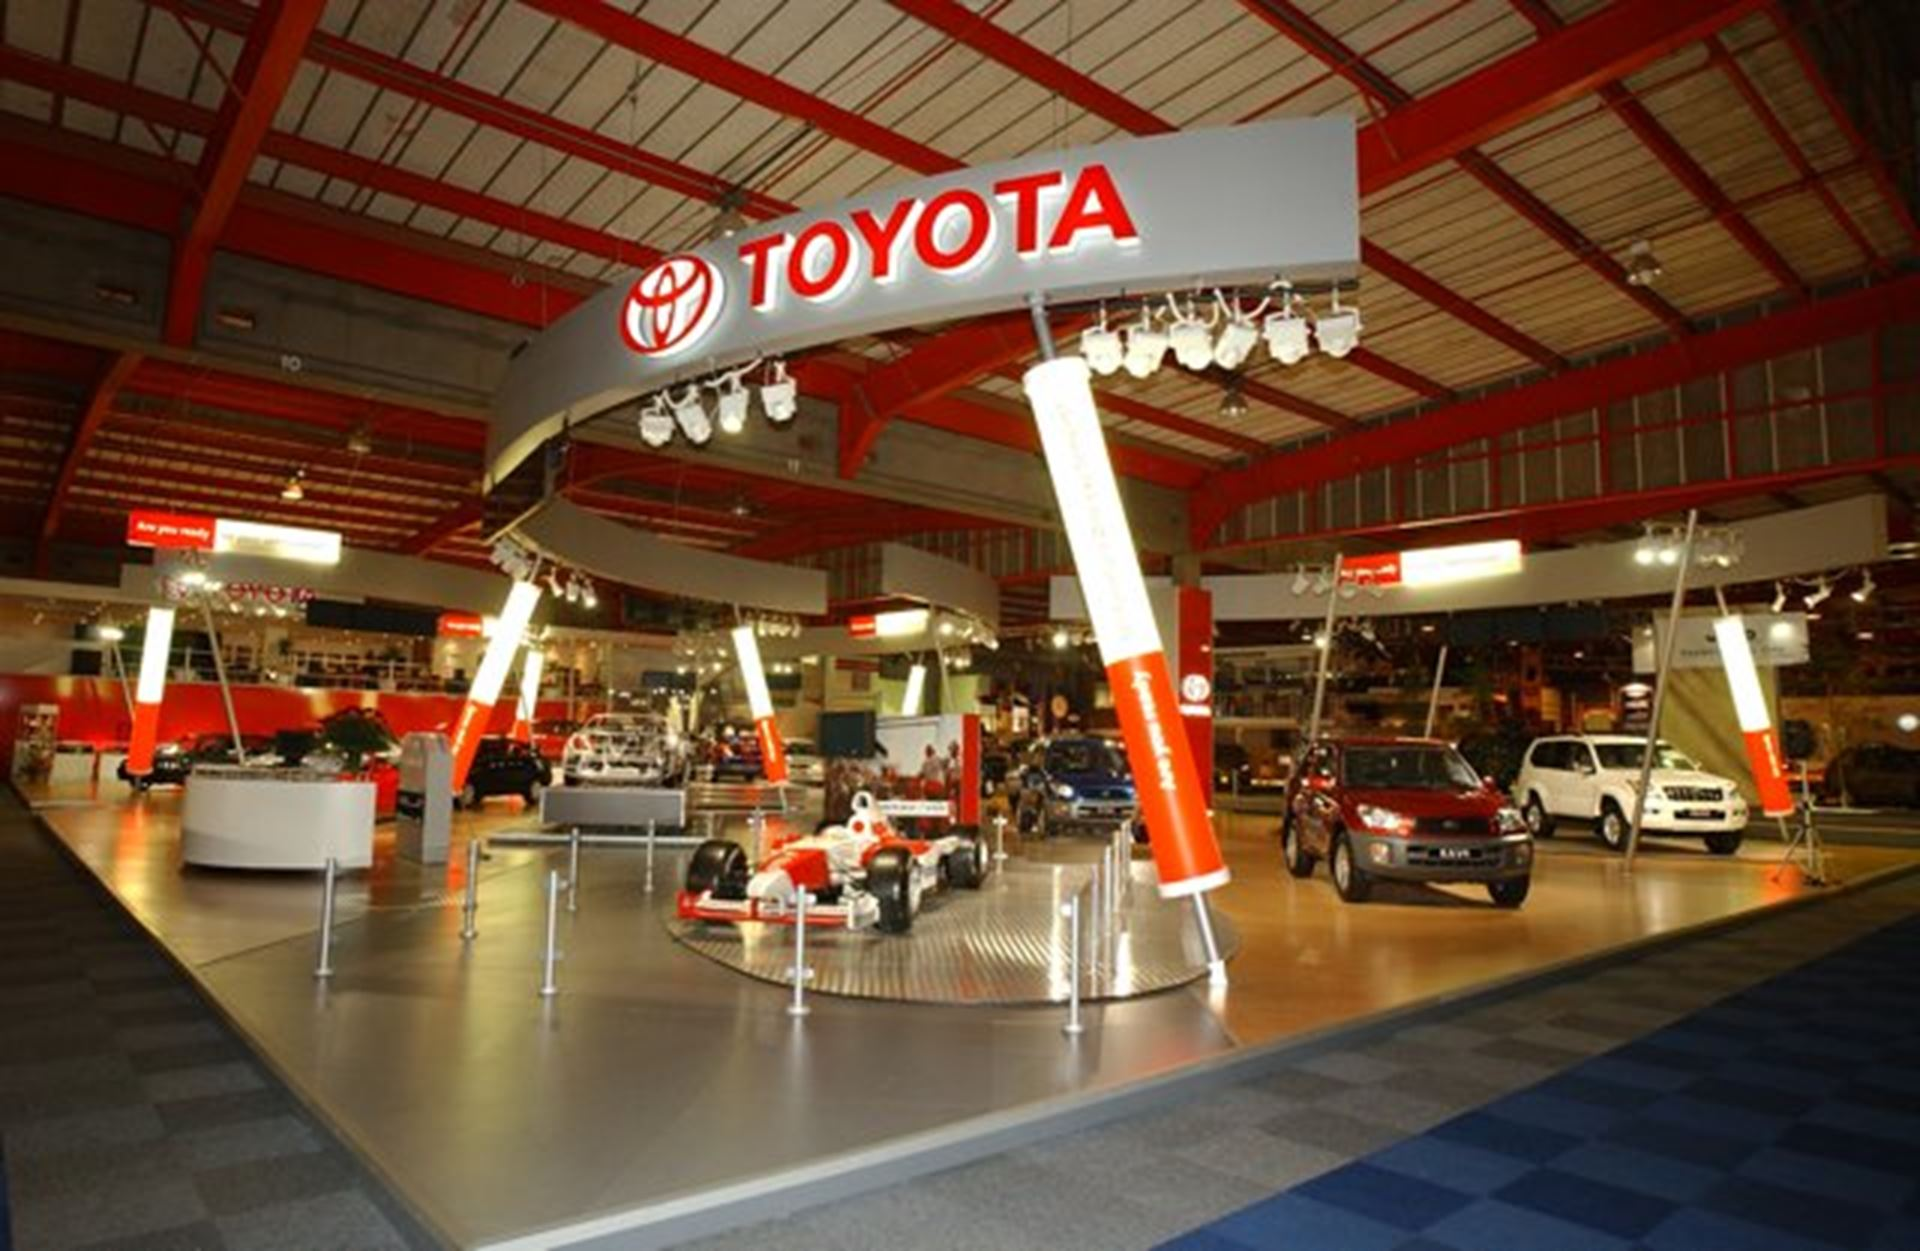 Toyota at Car Shows